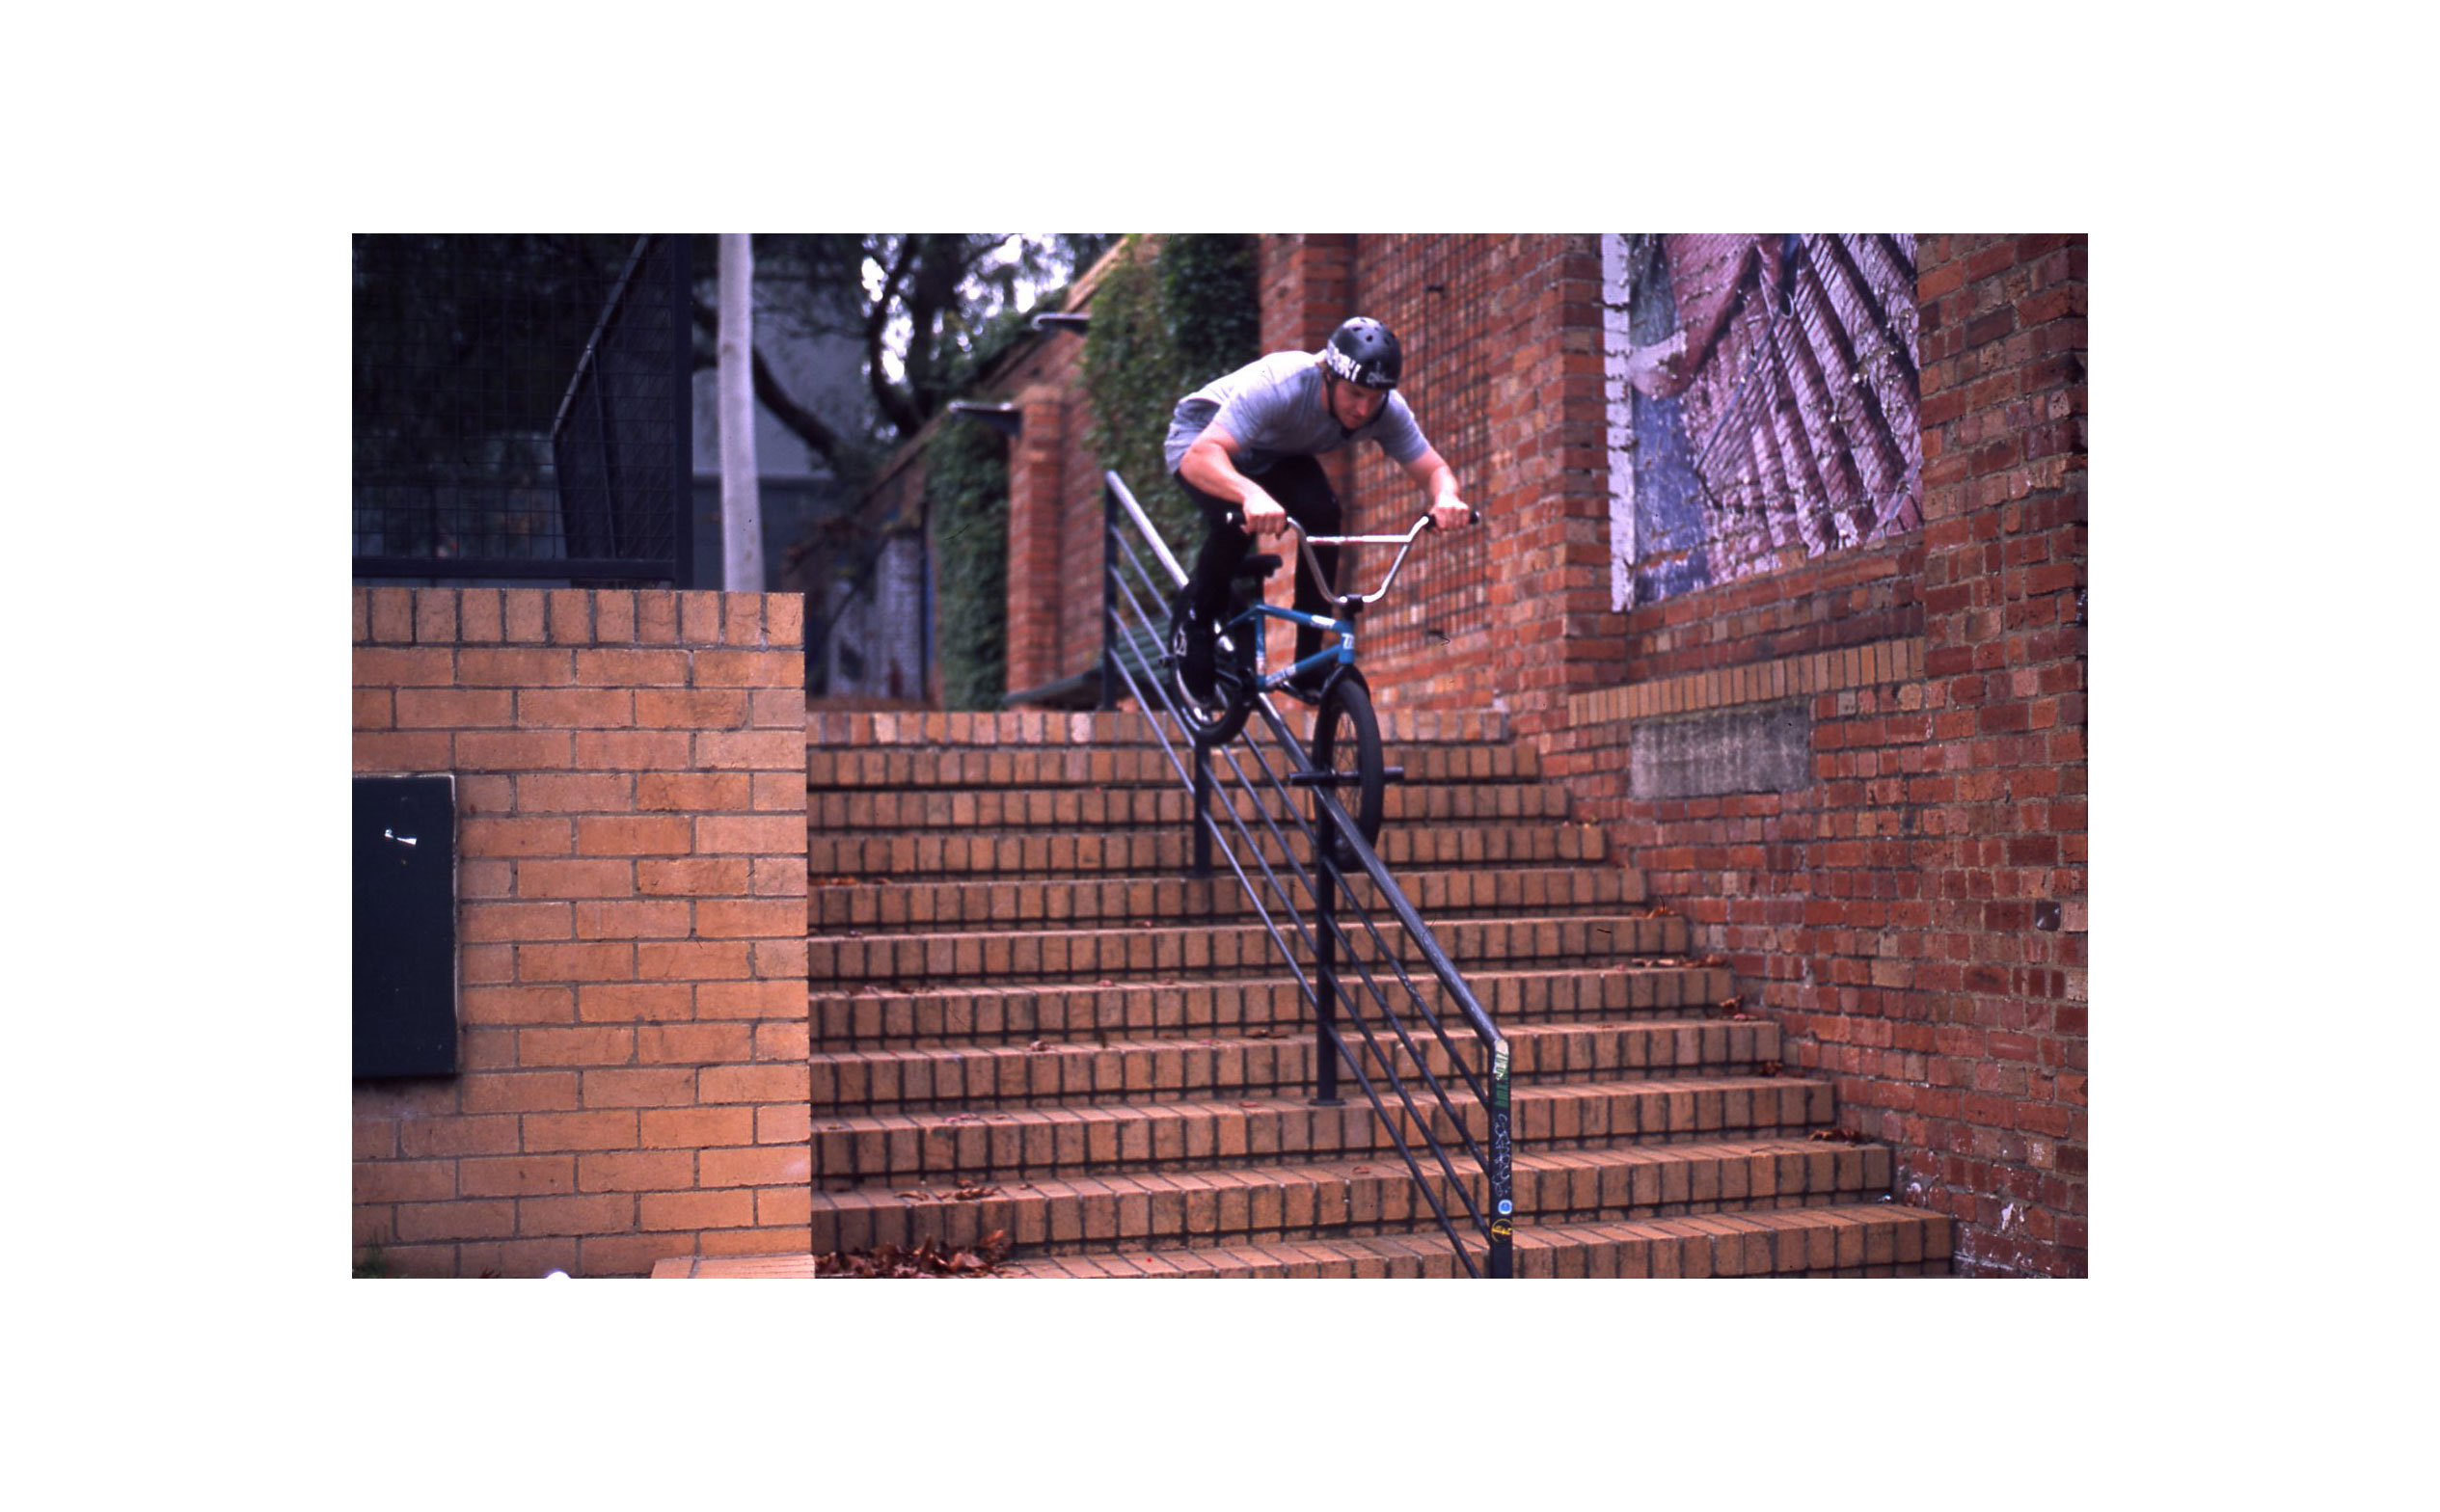 Jack Kelly - JK feeling out the rail just before he went in for one of his Alive & Well bangers.